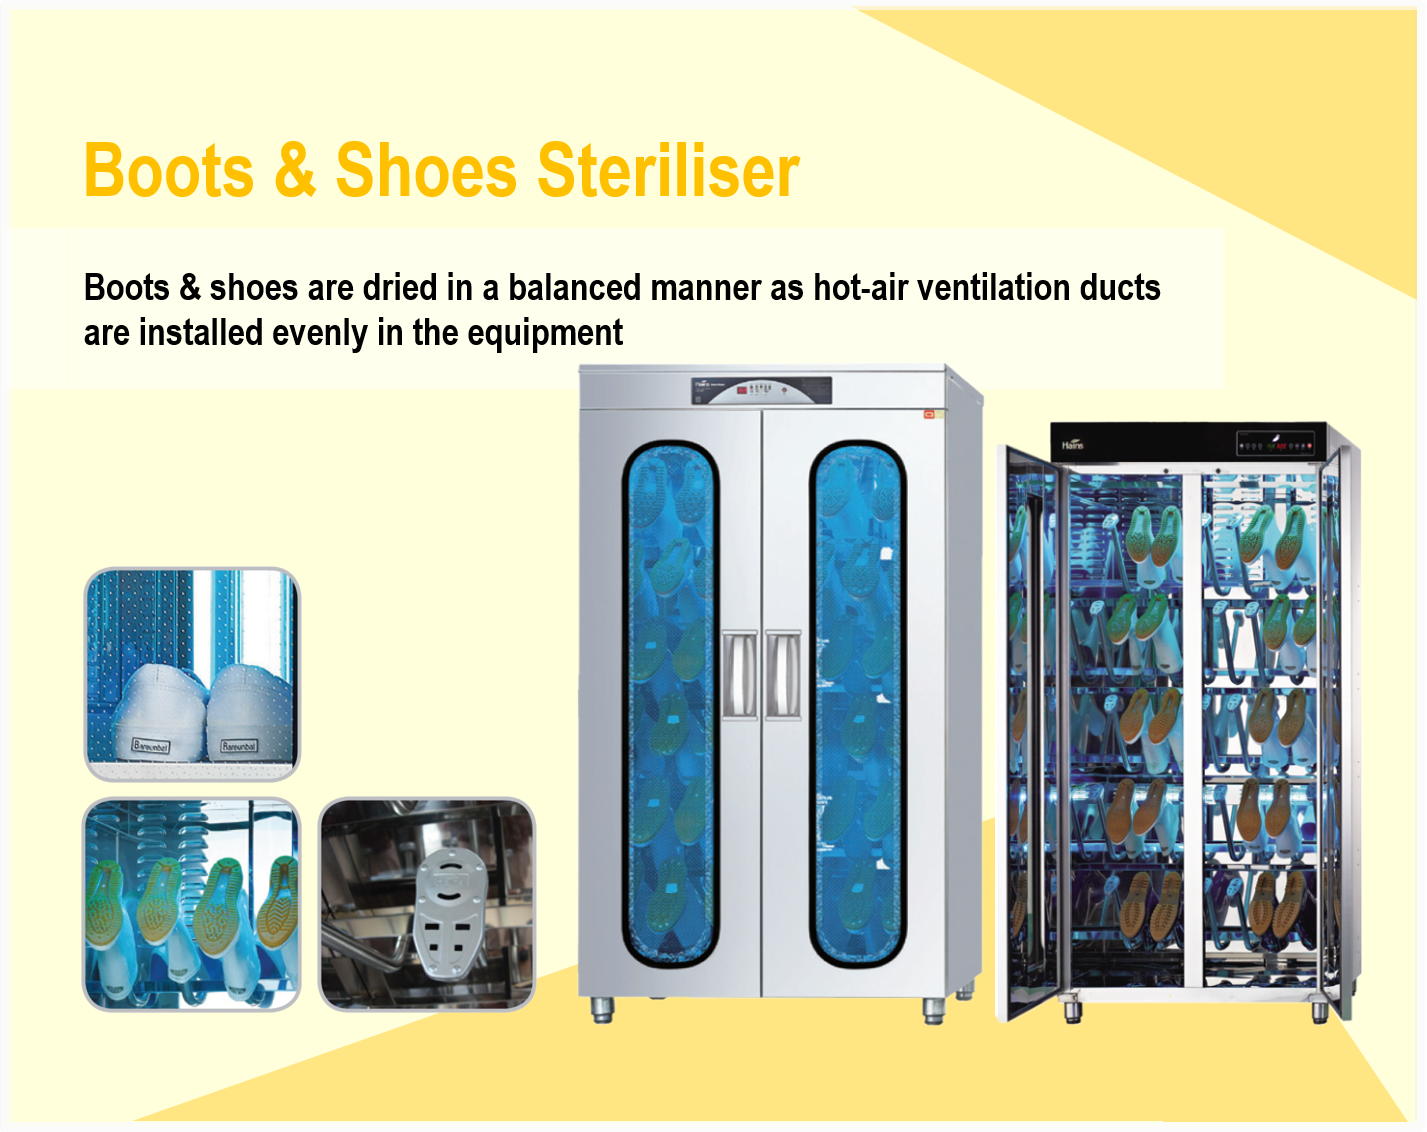 Boots & Shoes Steriliser